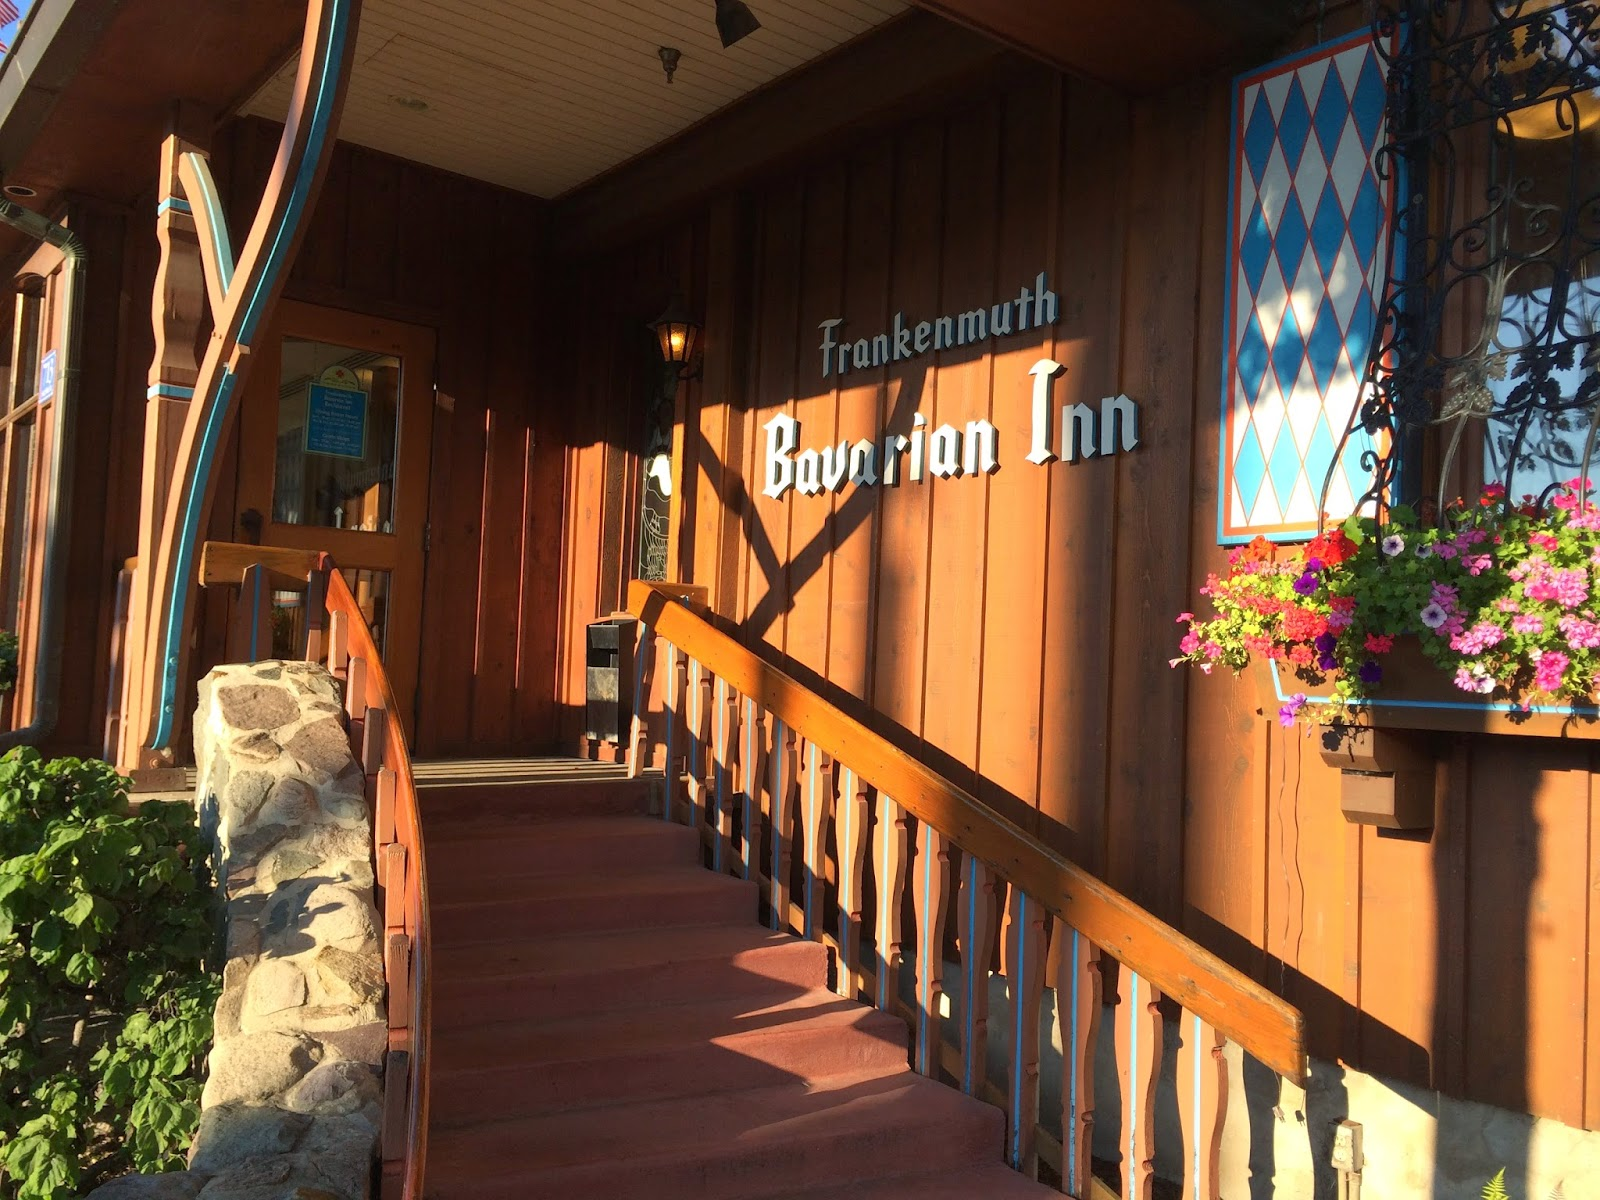 Bavarian Inn Restaurant Frankenmuth, Michigan MI